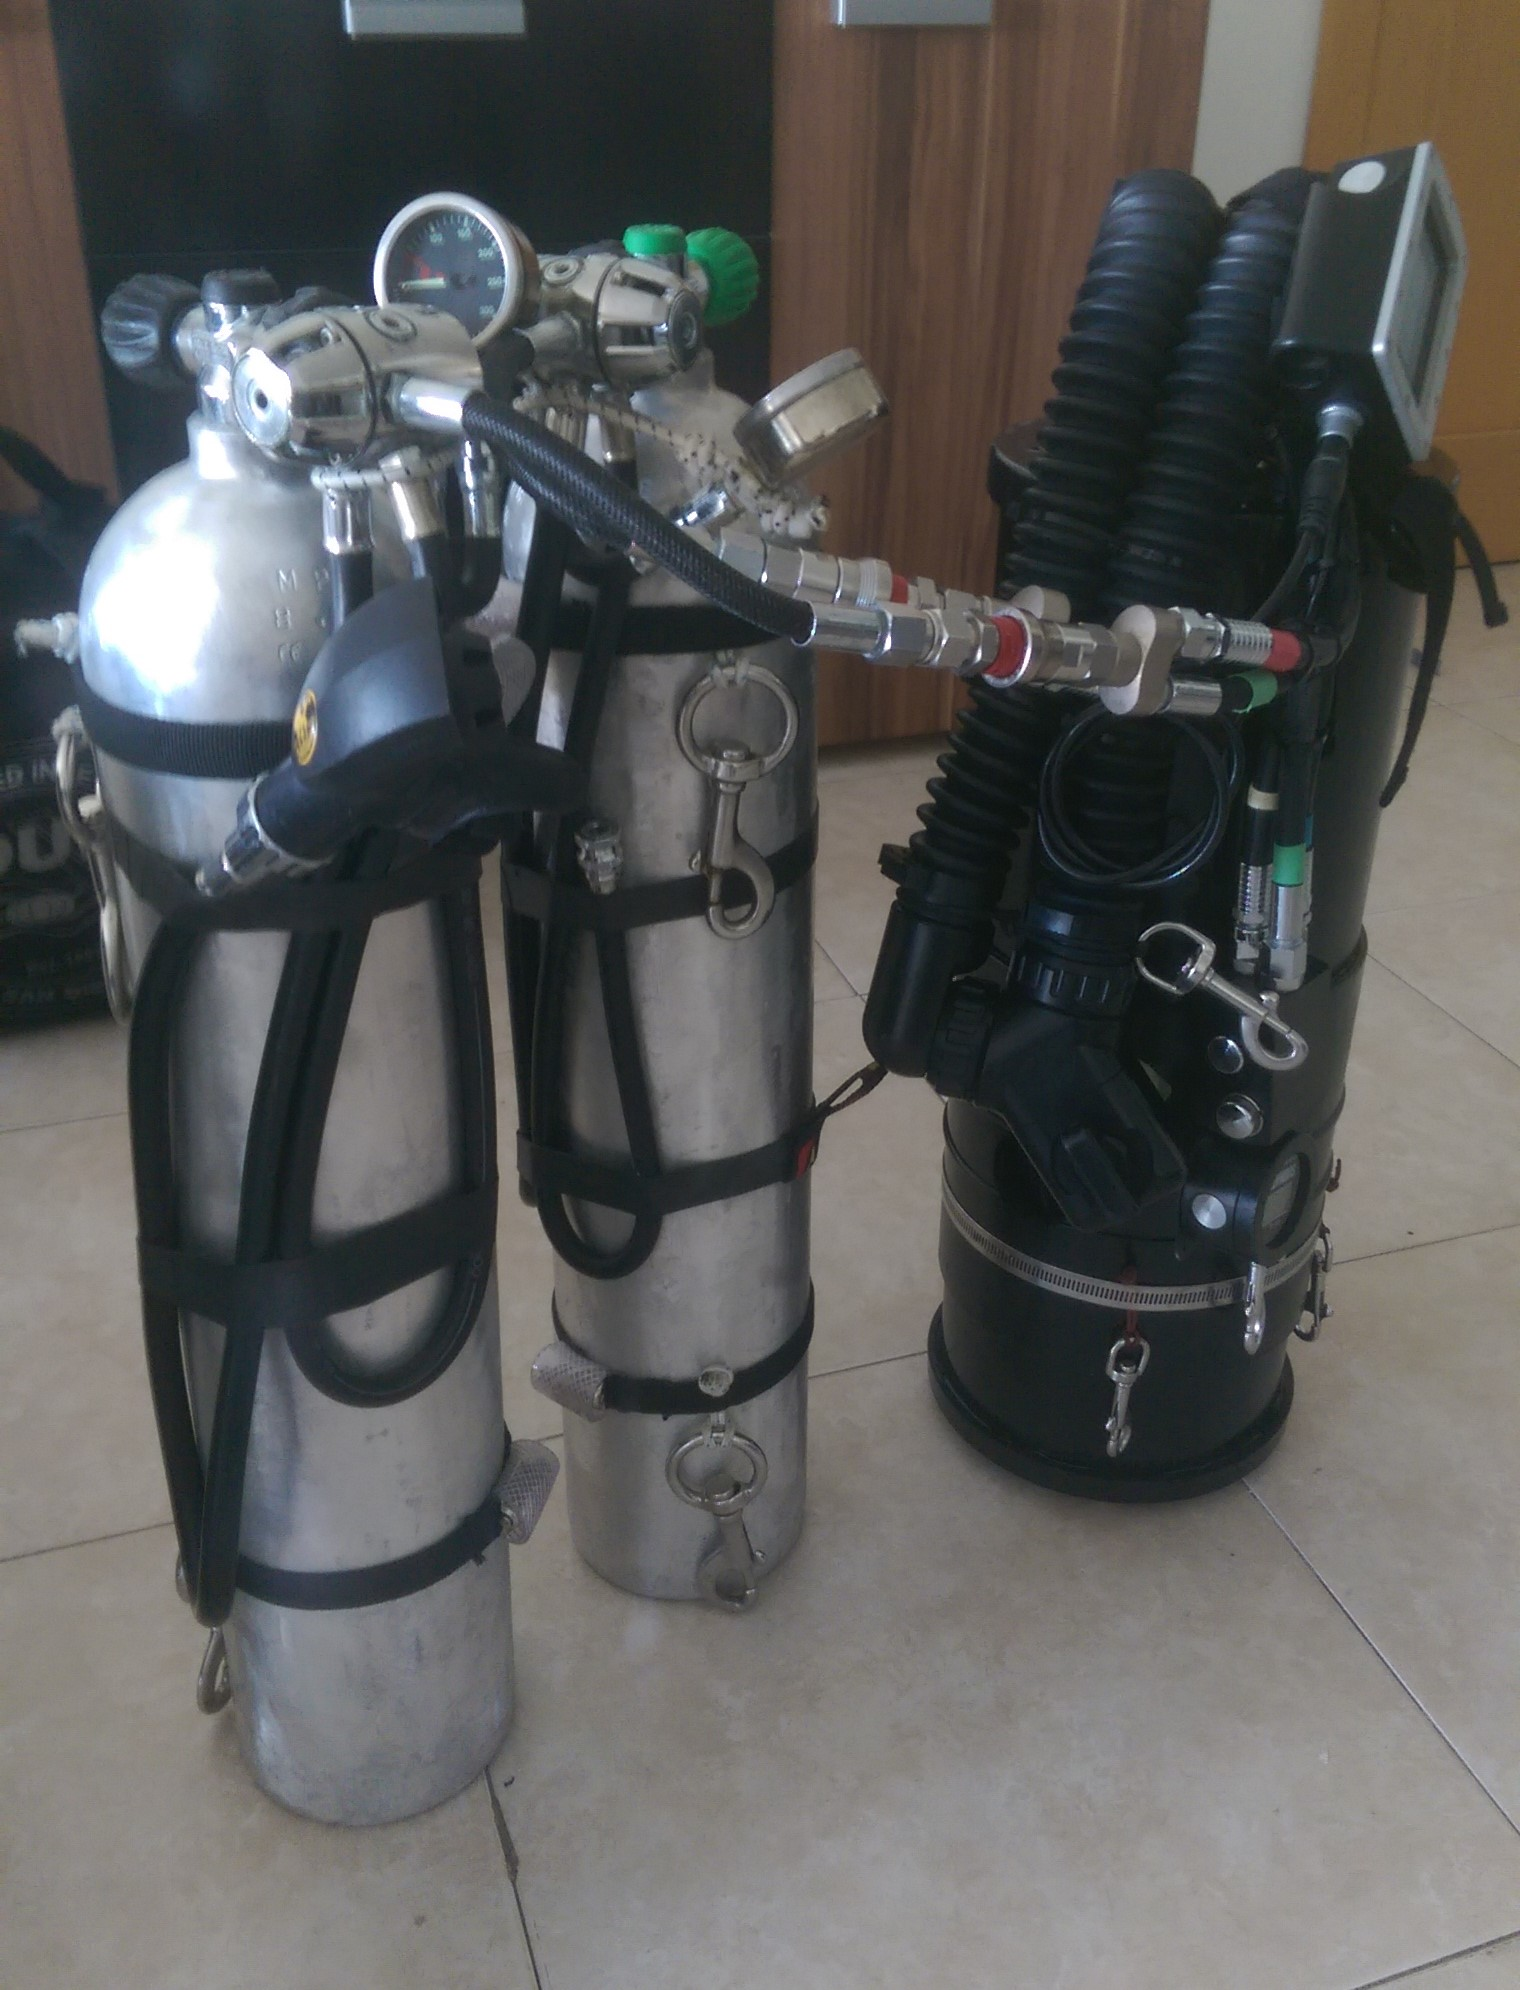 Dive-Systems-Proteus-P2-Sidemount-Rebreather--6475.jpg